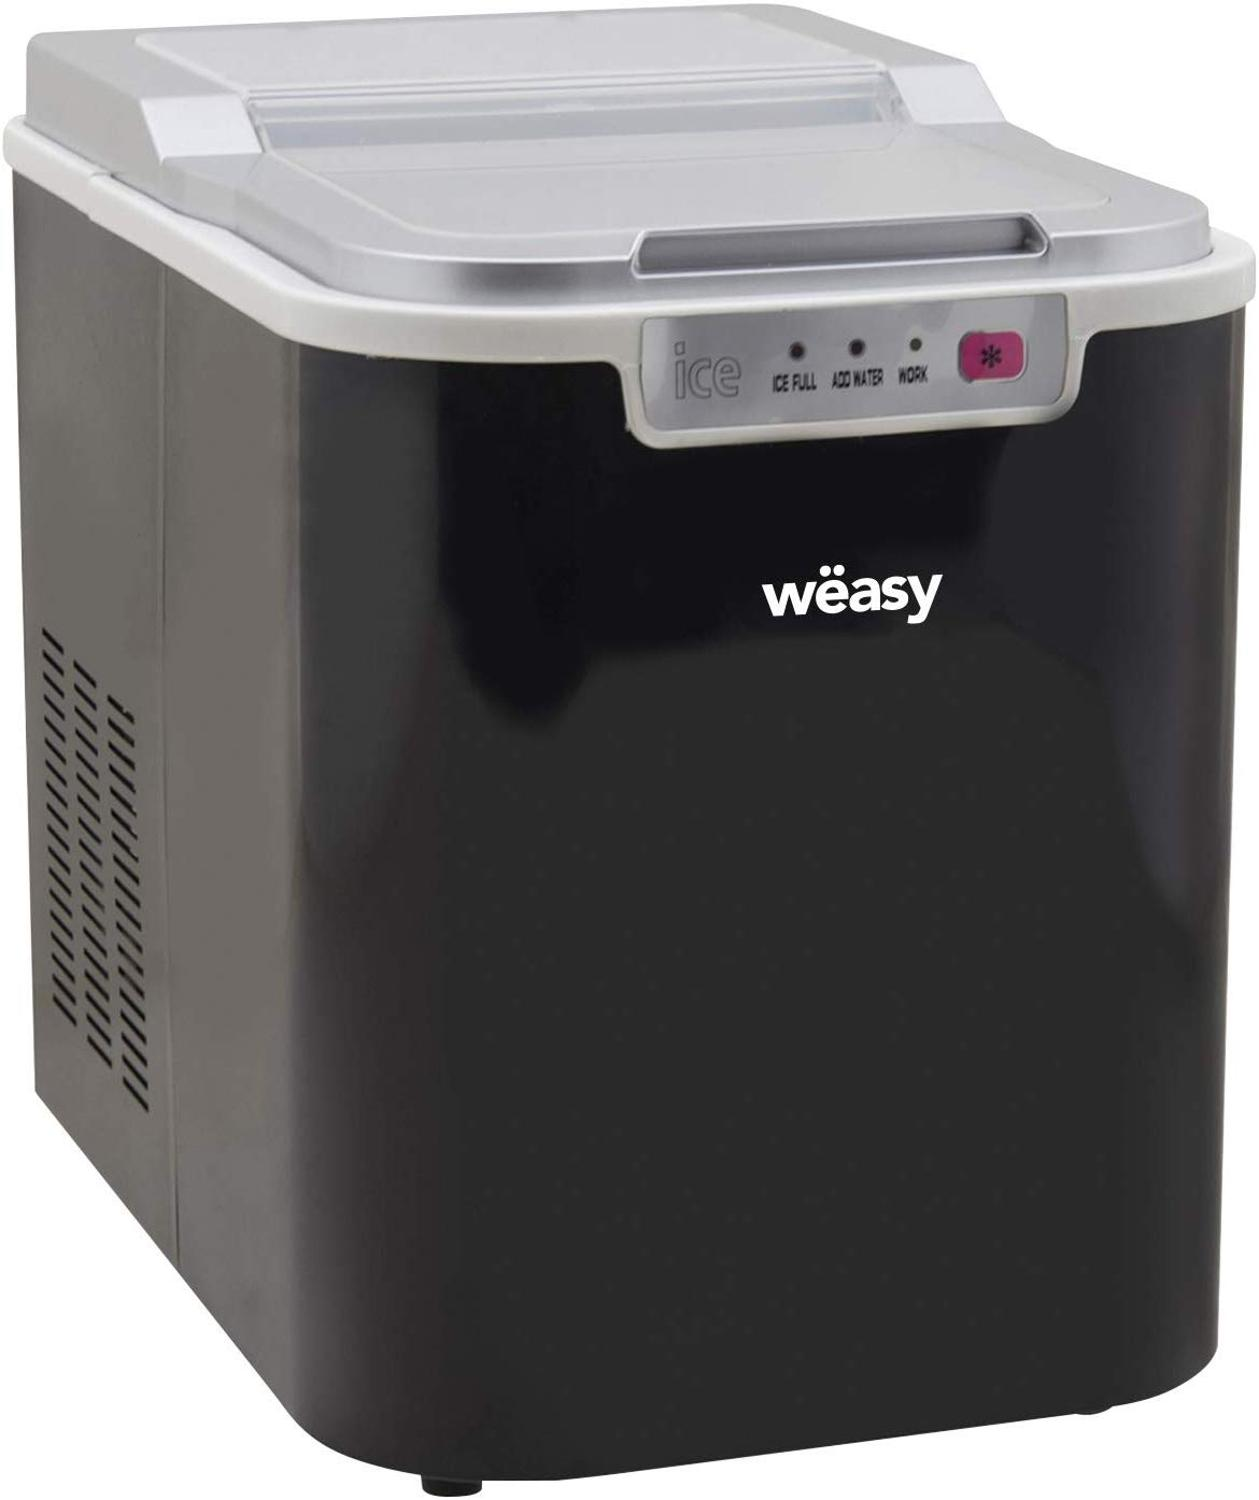 Ice Machine Wëasy KW12, 12 Kg In 24 H, 1 Size Ice Automatic, Electrics, Compact, Portable No Installation